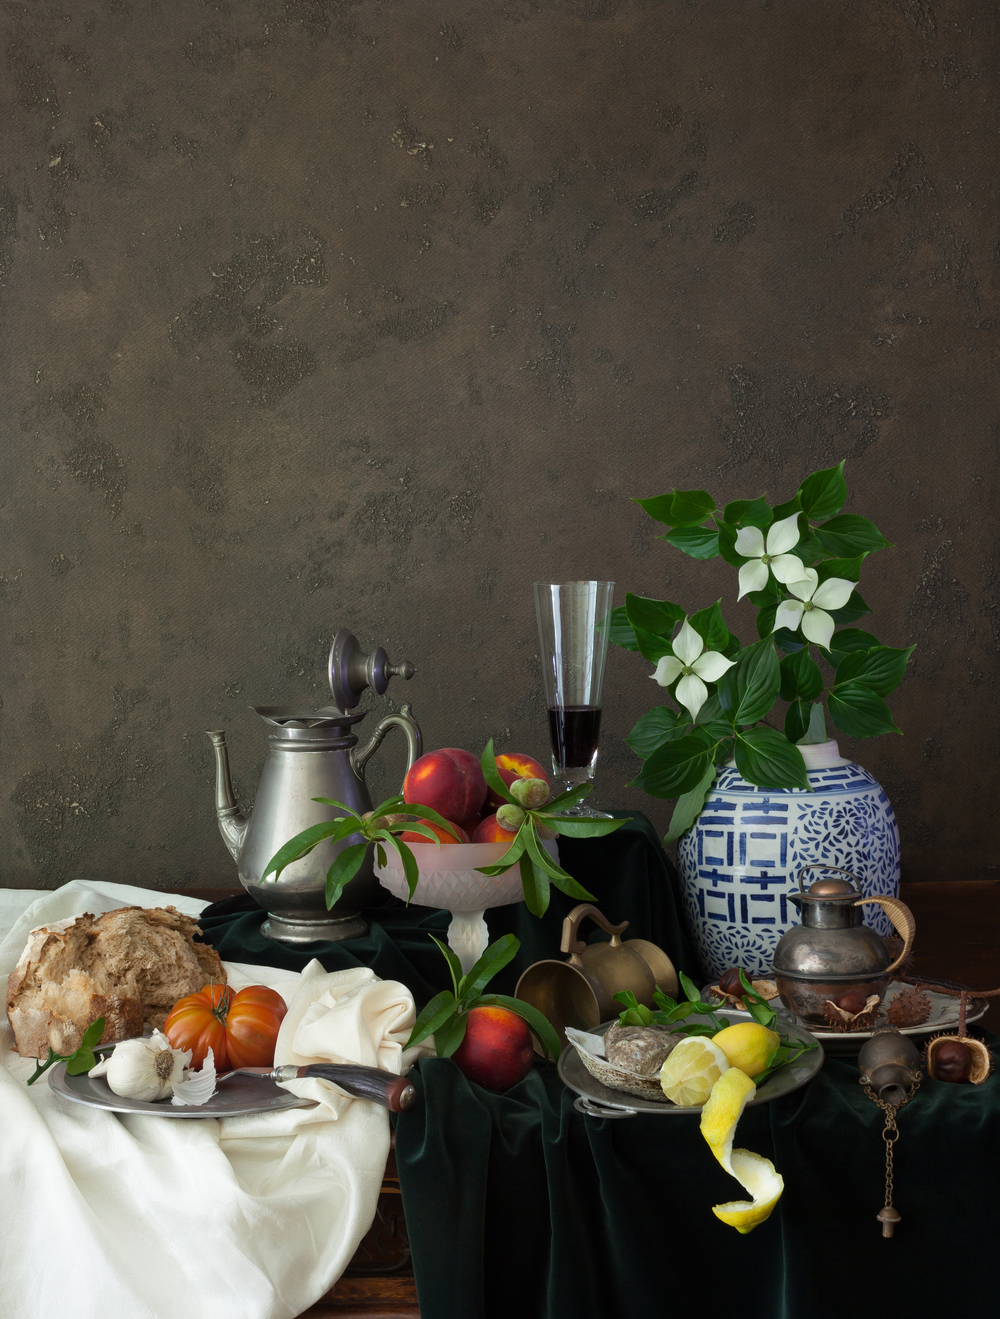 Still Life with Tomato & Fruits 2014